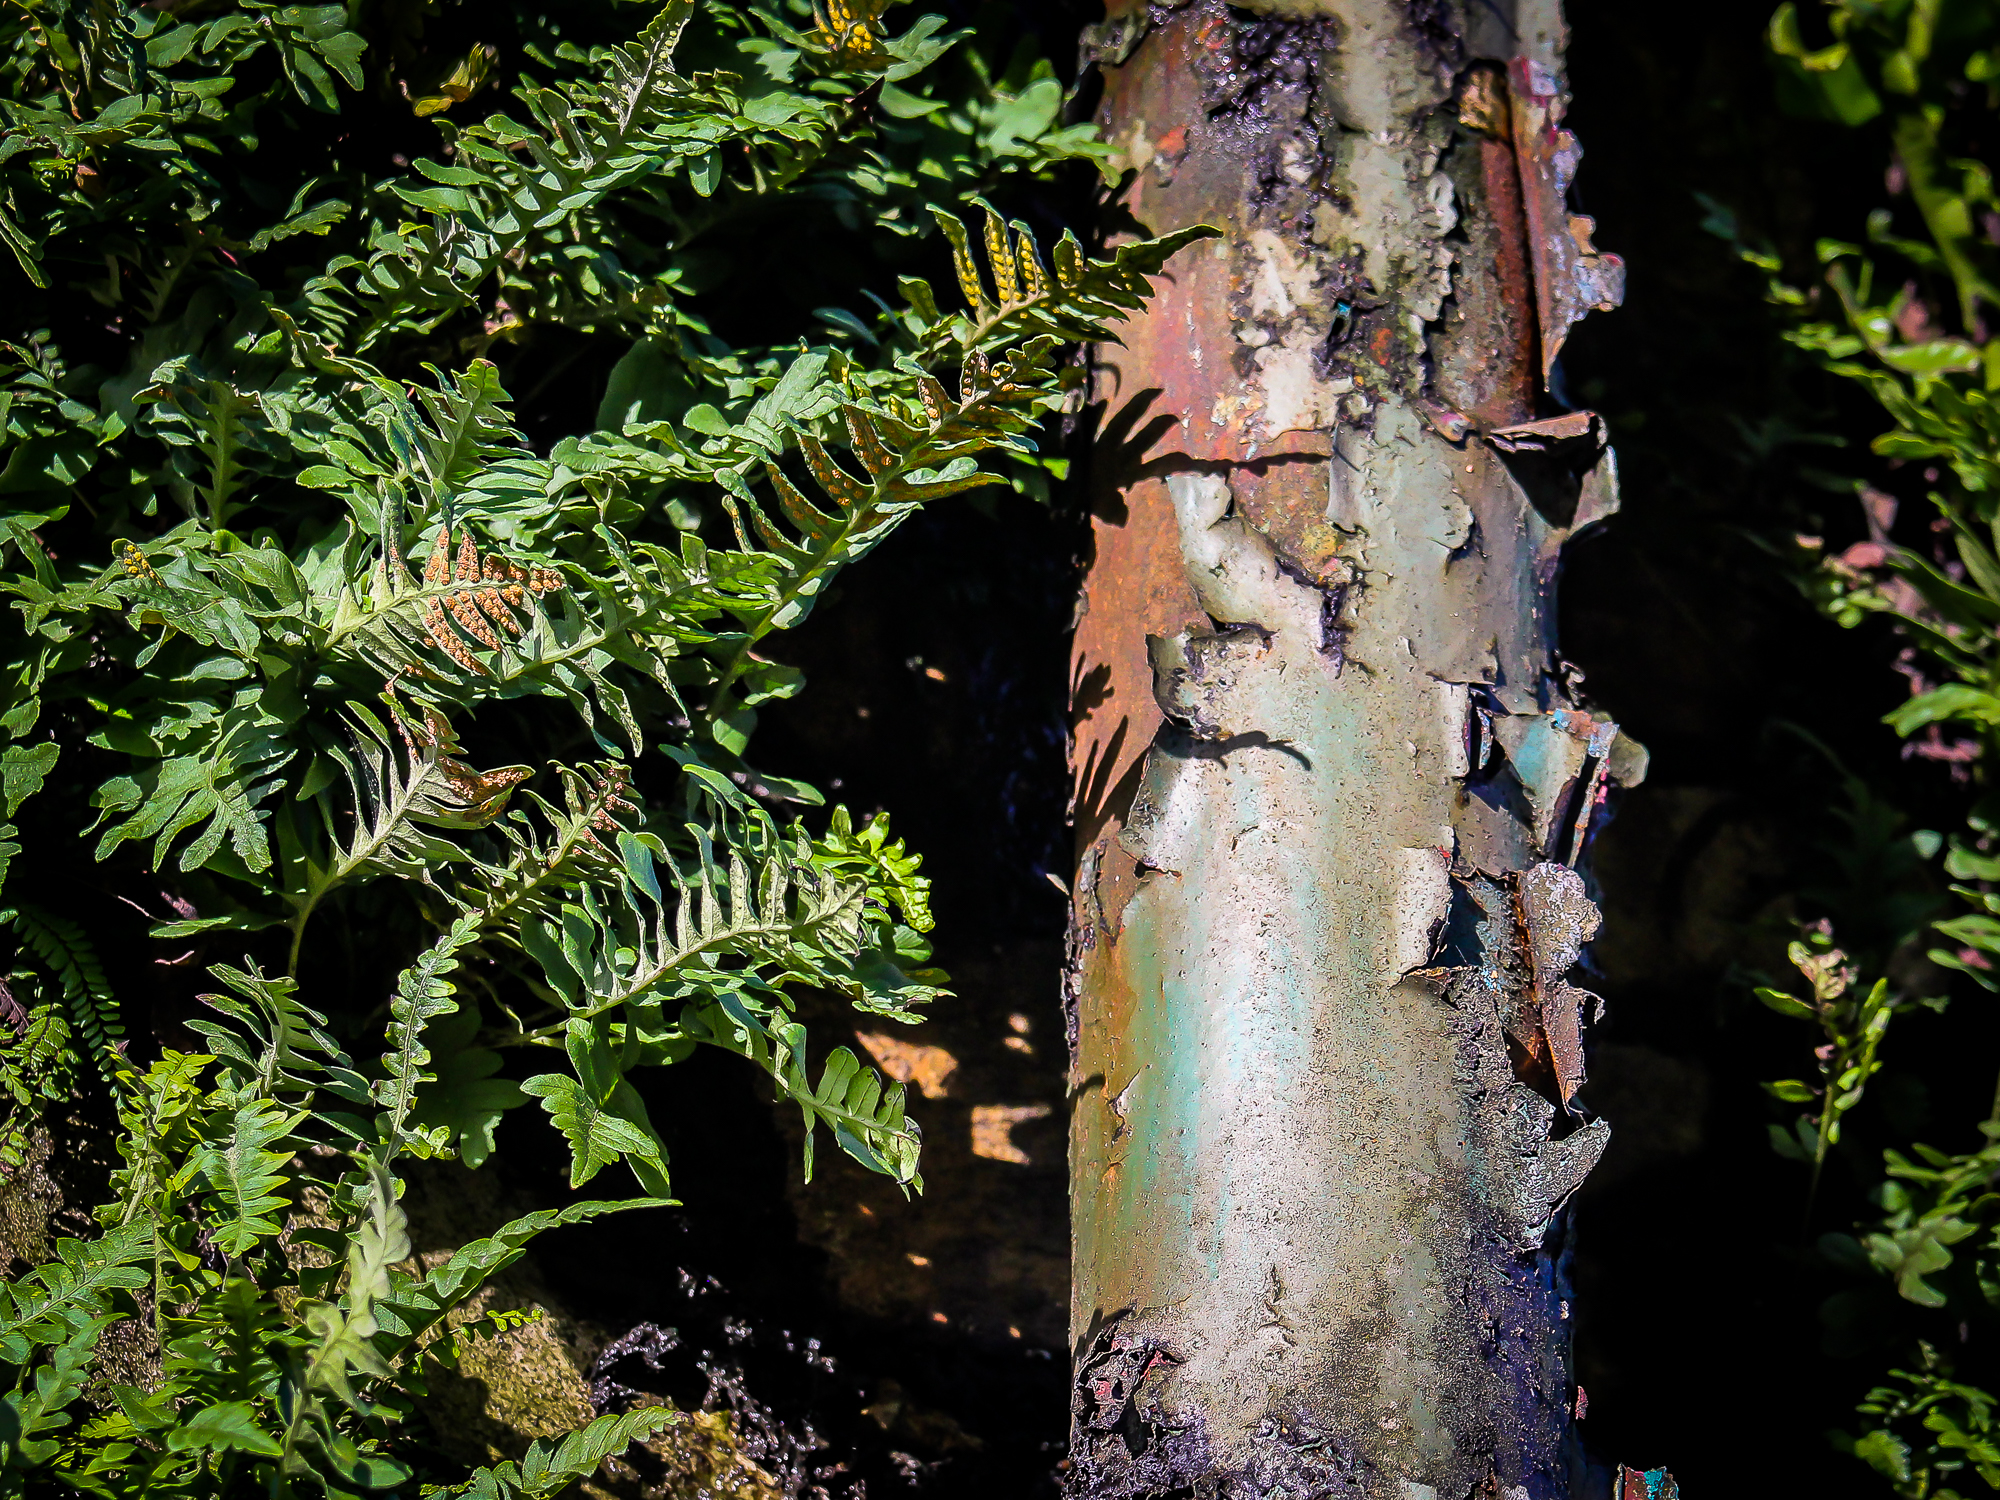 A rusty Victorian drainpipe peels away surrounded by lush ferns